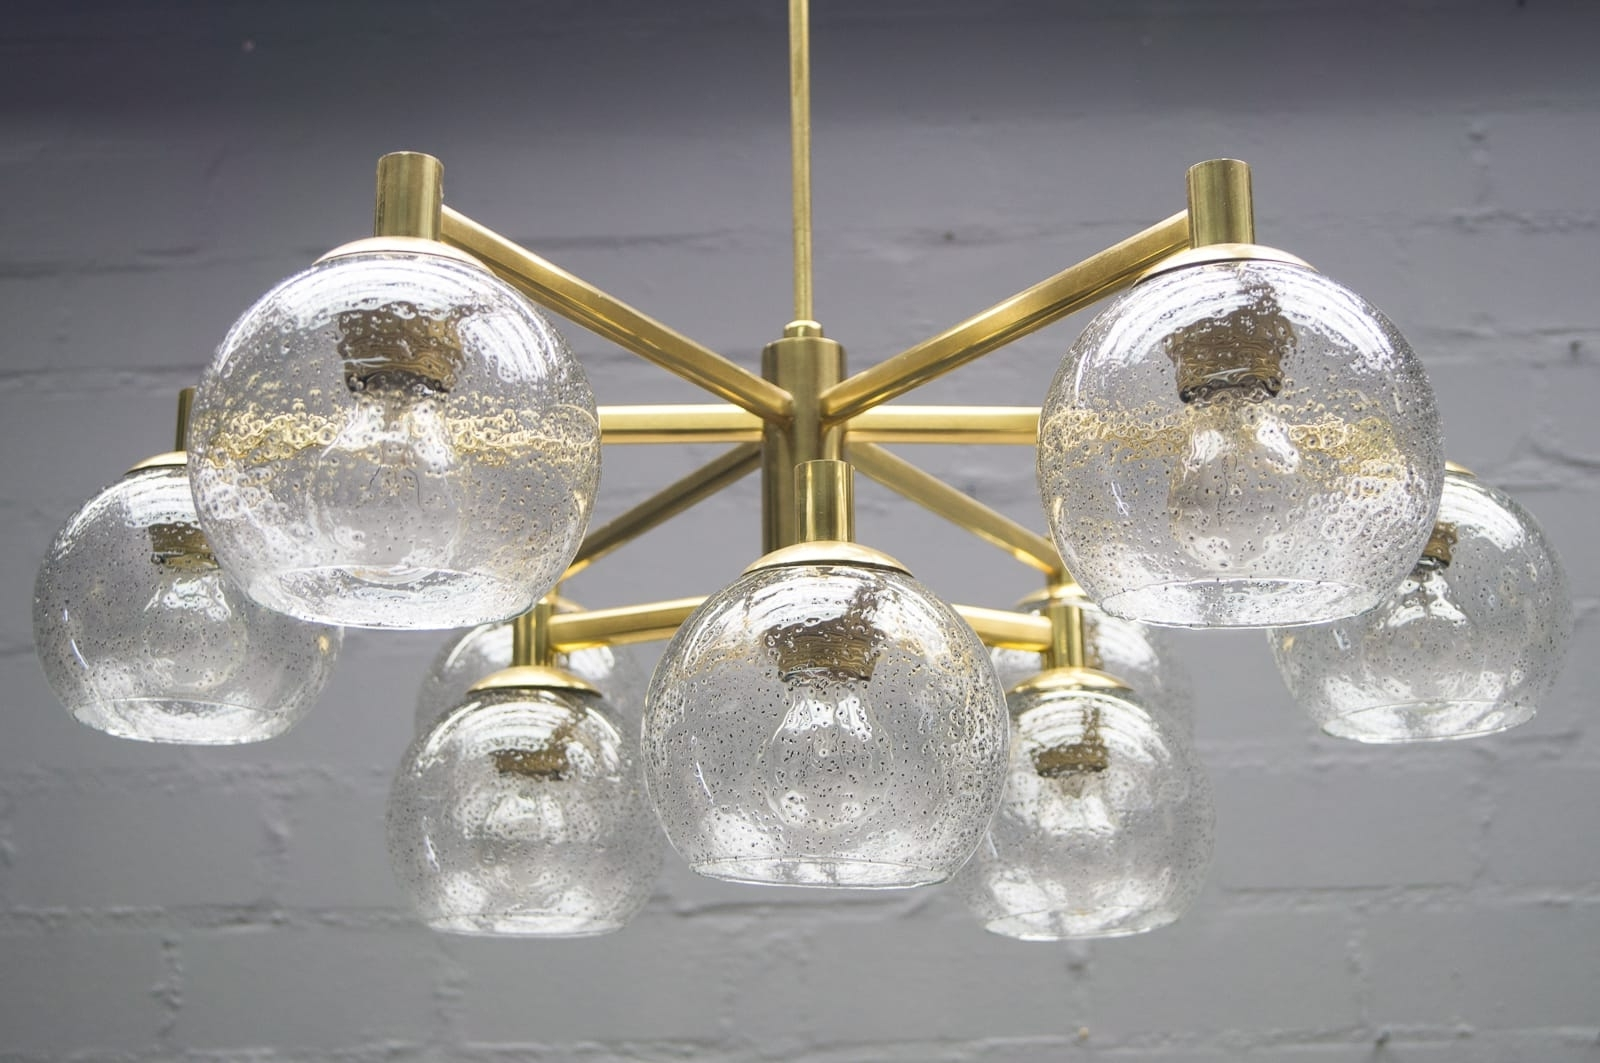 Brass Vintage Chandelier With Nine Glass Spheres, 1960S For Sale At Inside Trendy Vintage Chandelier (View 4 of 15)